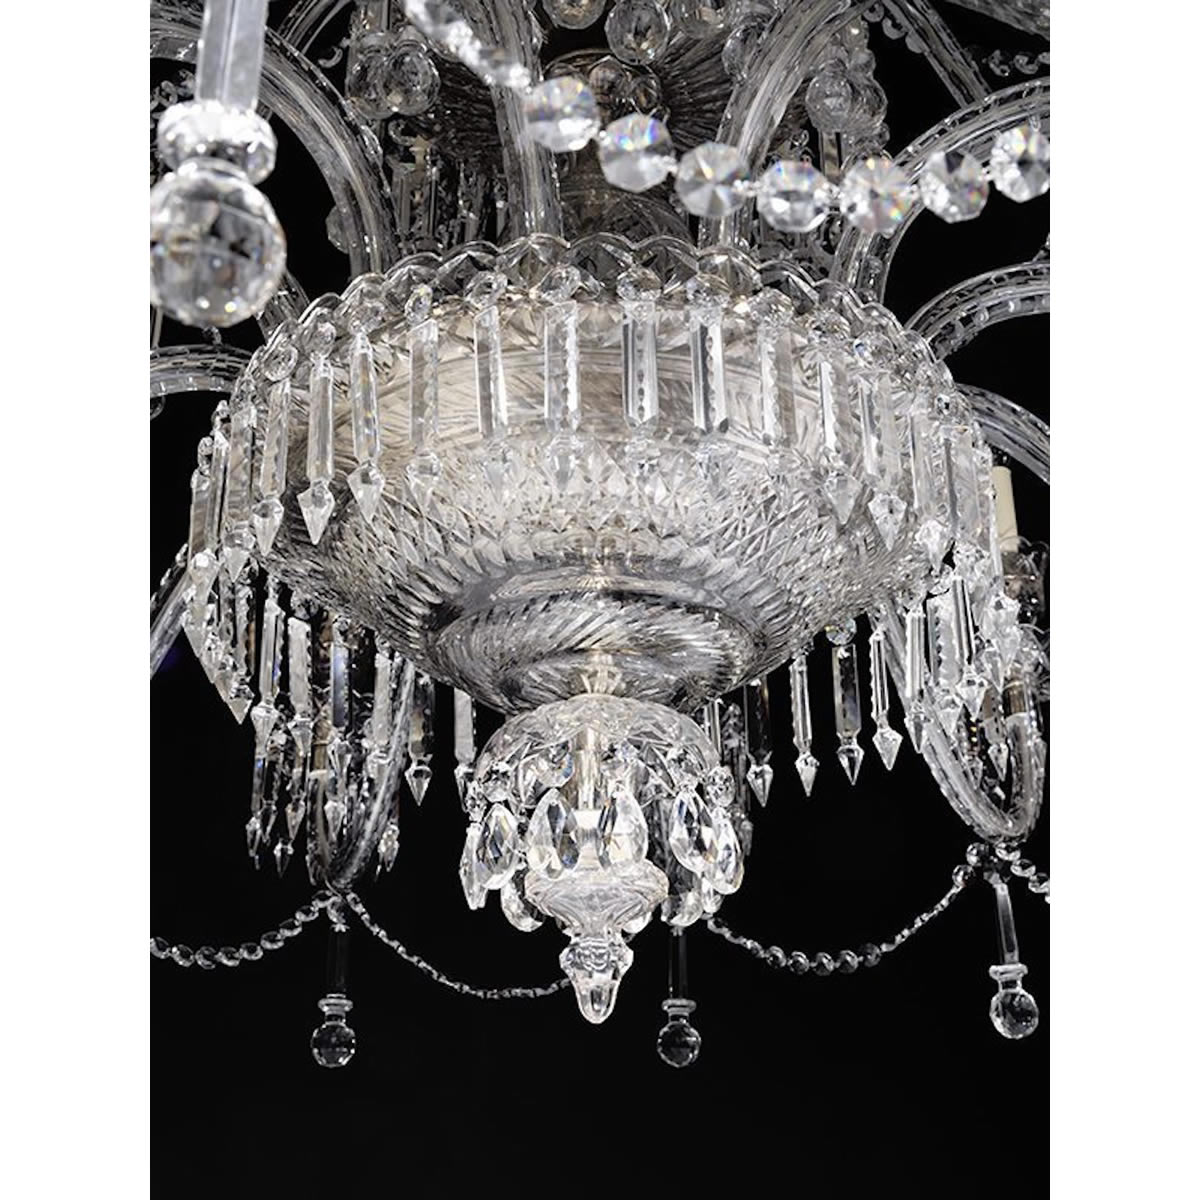 The Manhattan Cut Glass and Crystal Chandelier